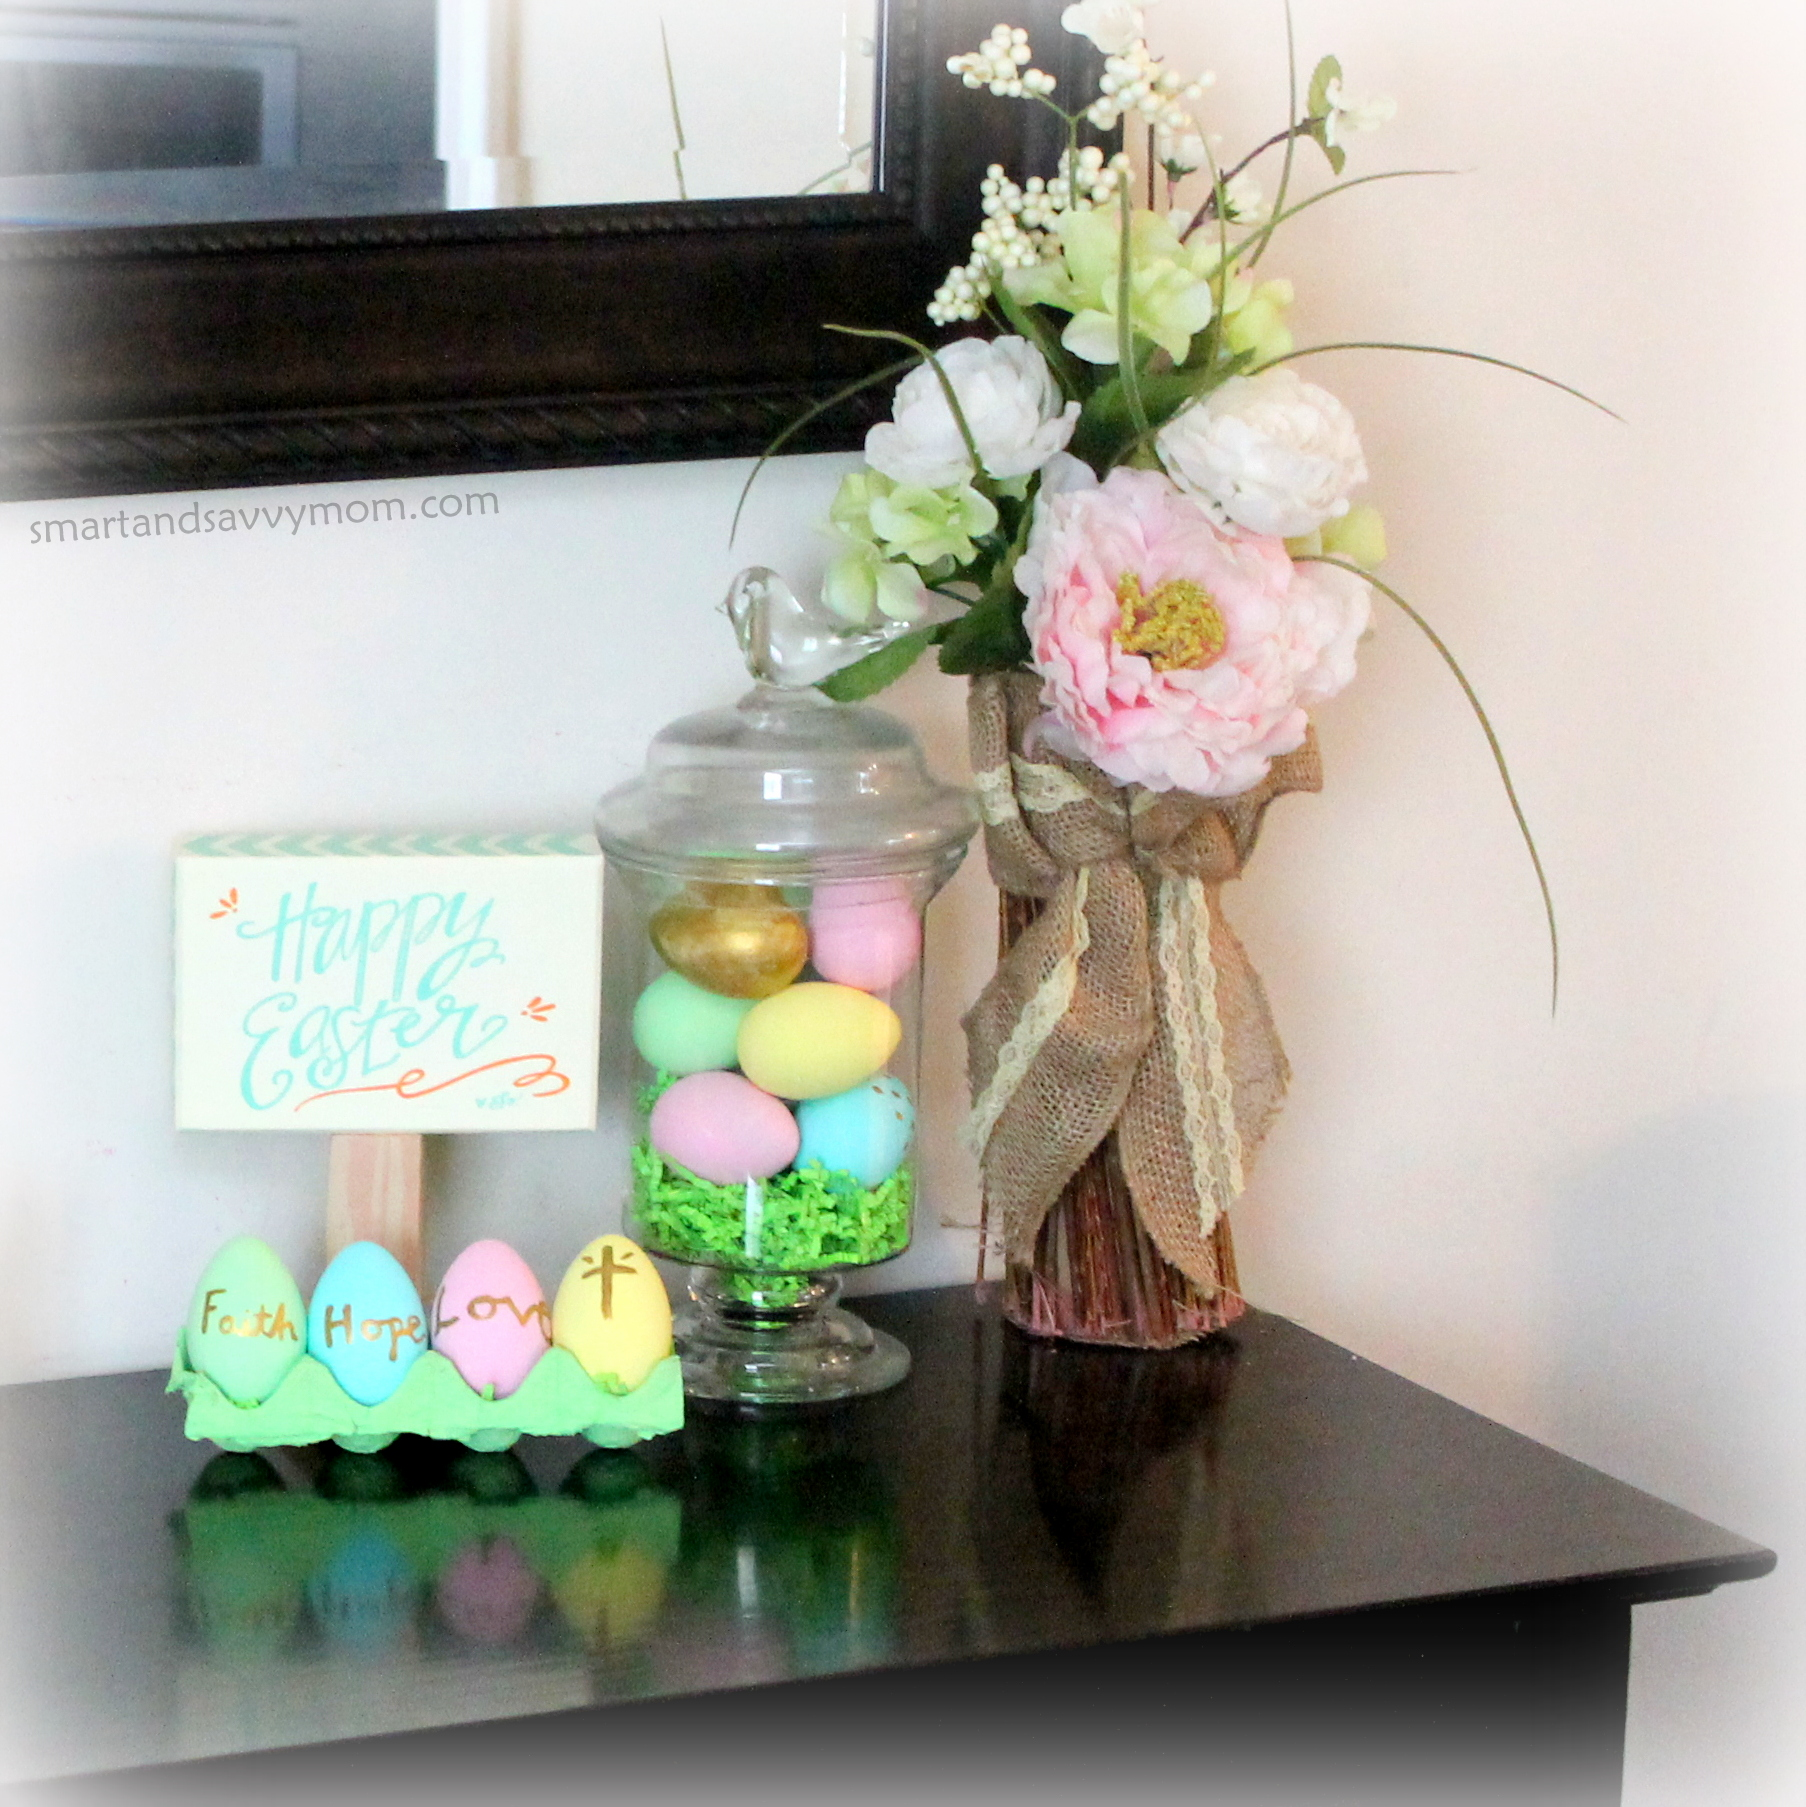 Console table Easter decor with hand painted eggs, happy easter sign, and kirkland's pink flower arrangement